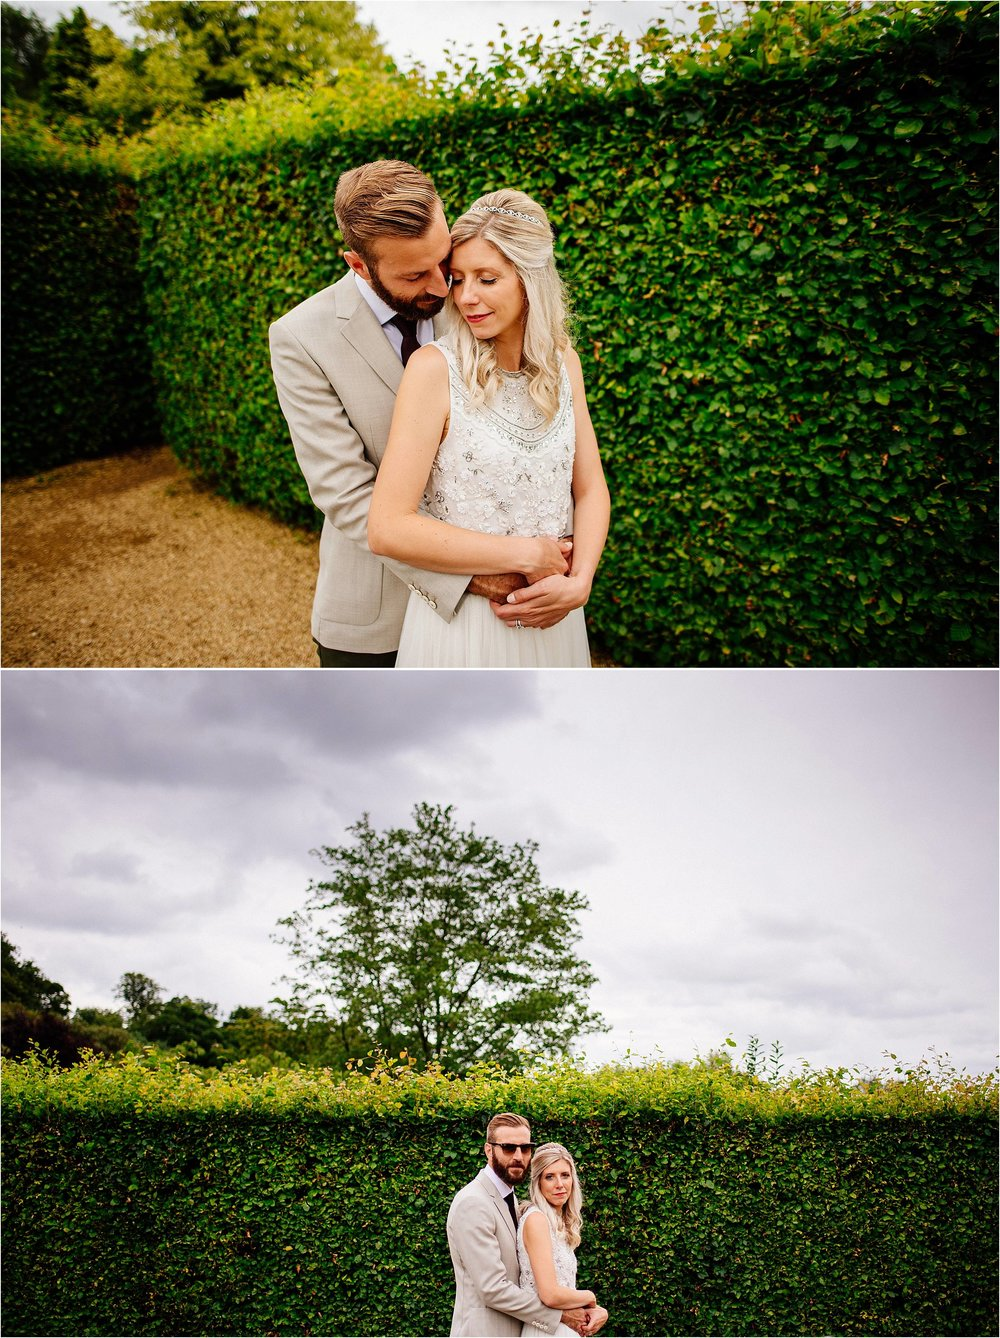 Barnsdale Gardens Wedding Photographer_0075.jpg